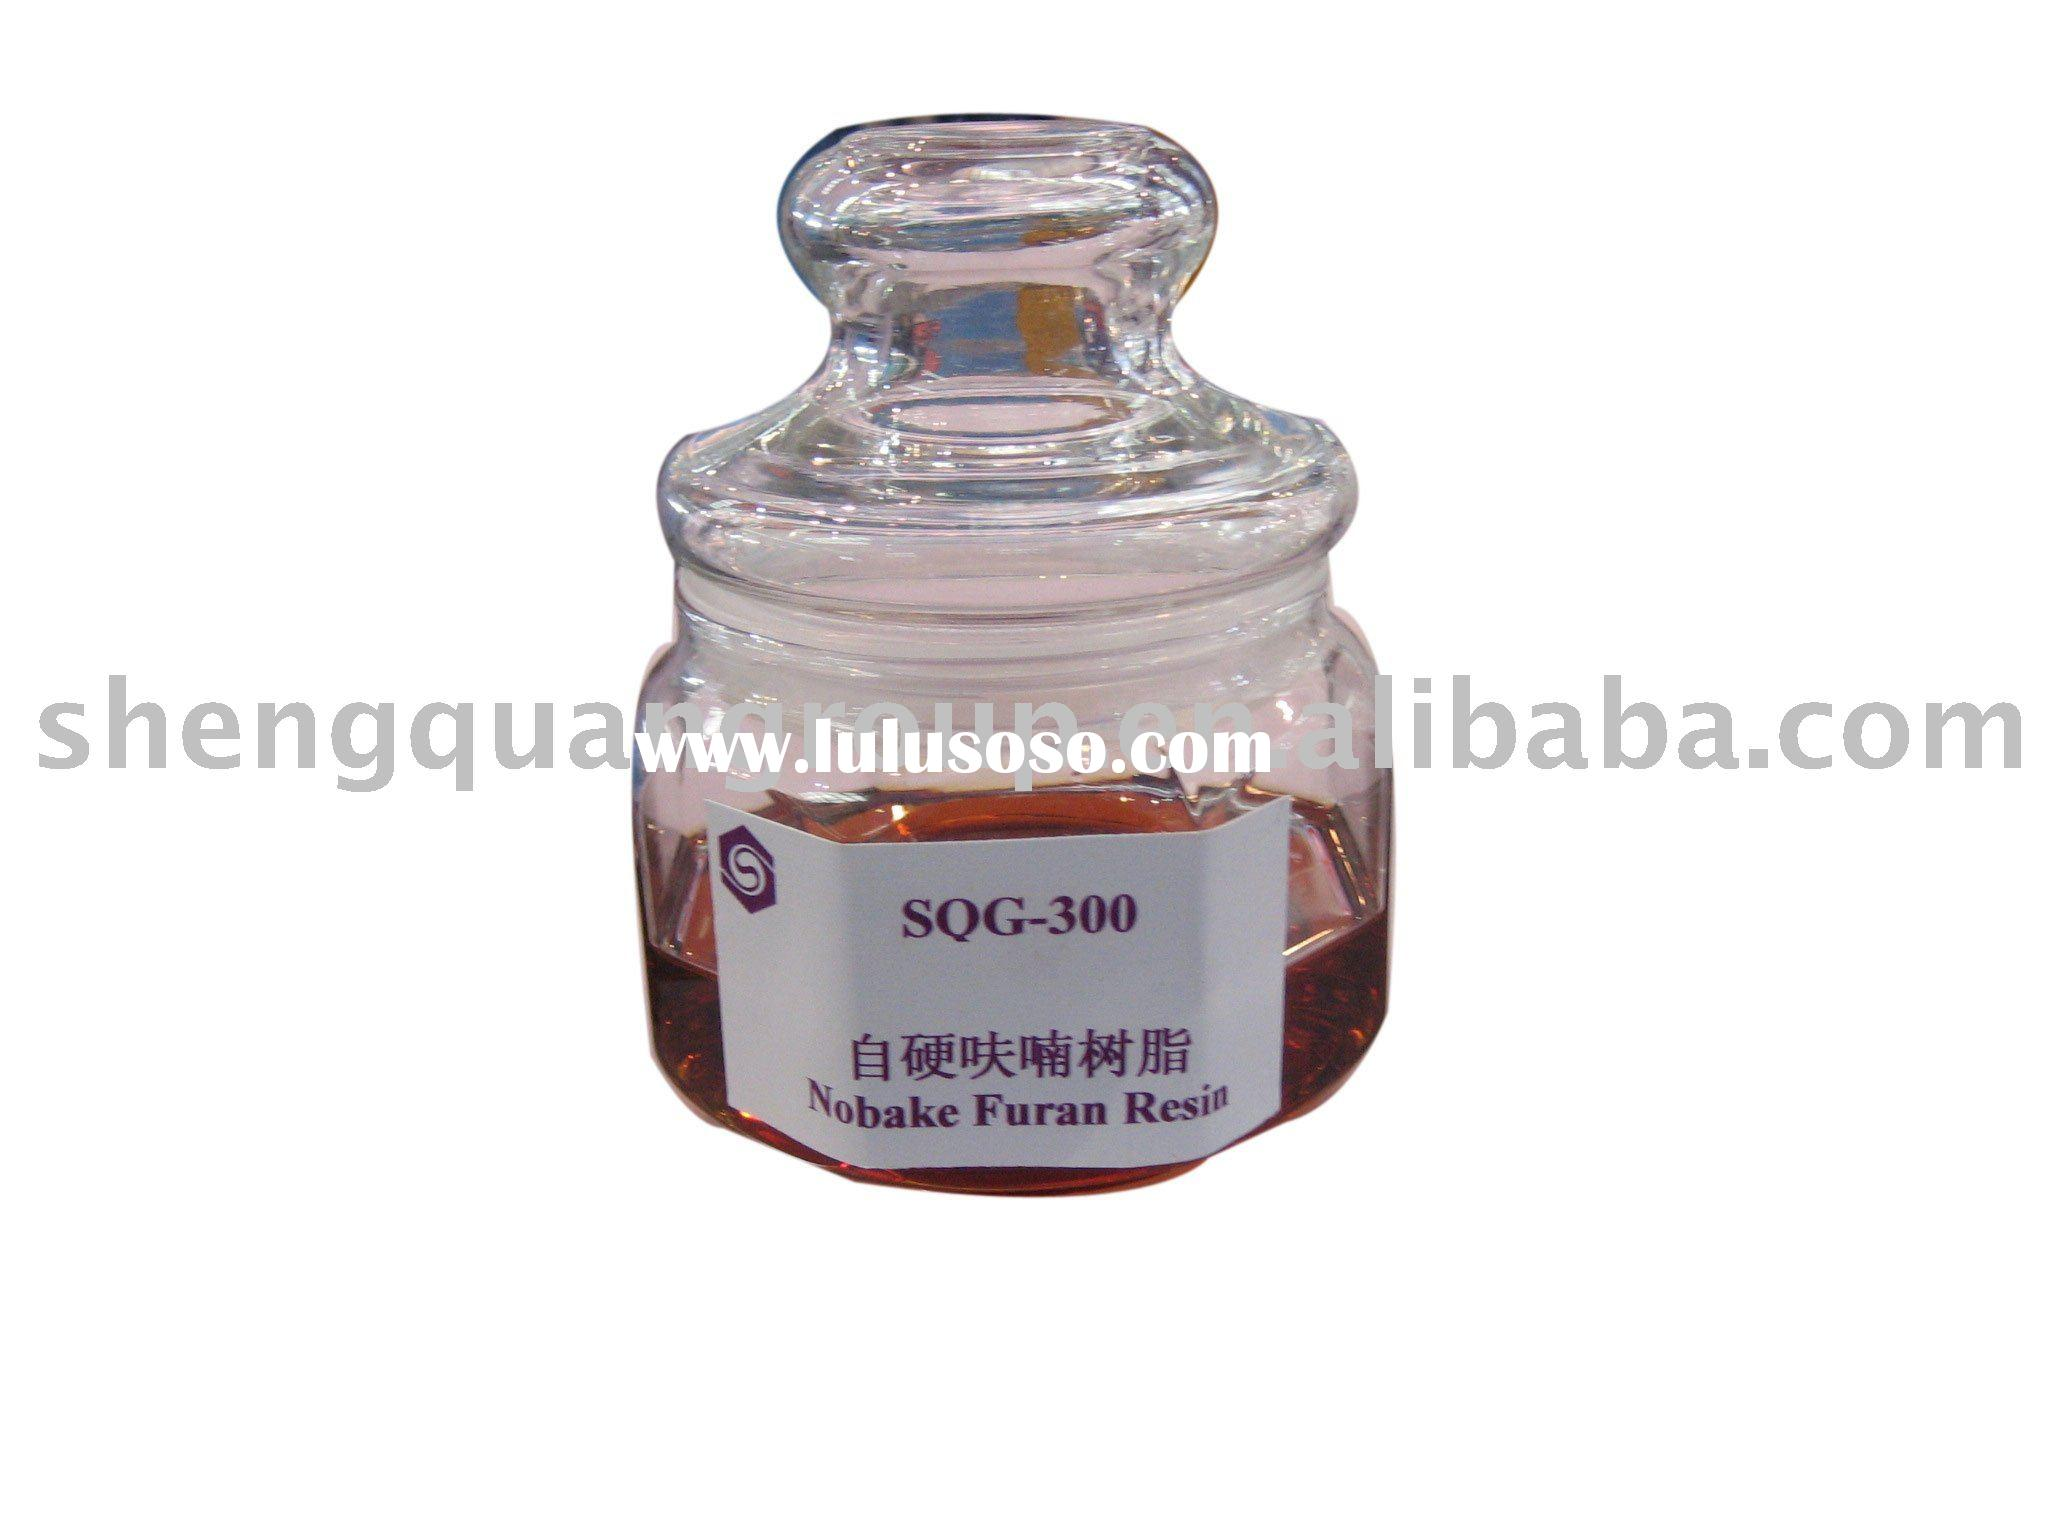 no bake furan resin